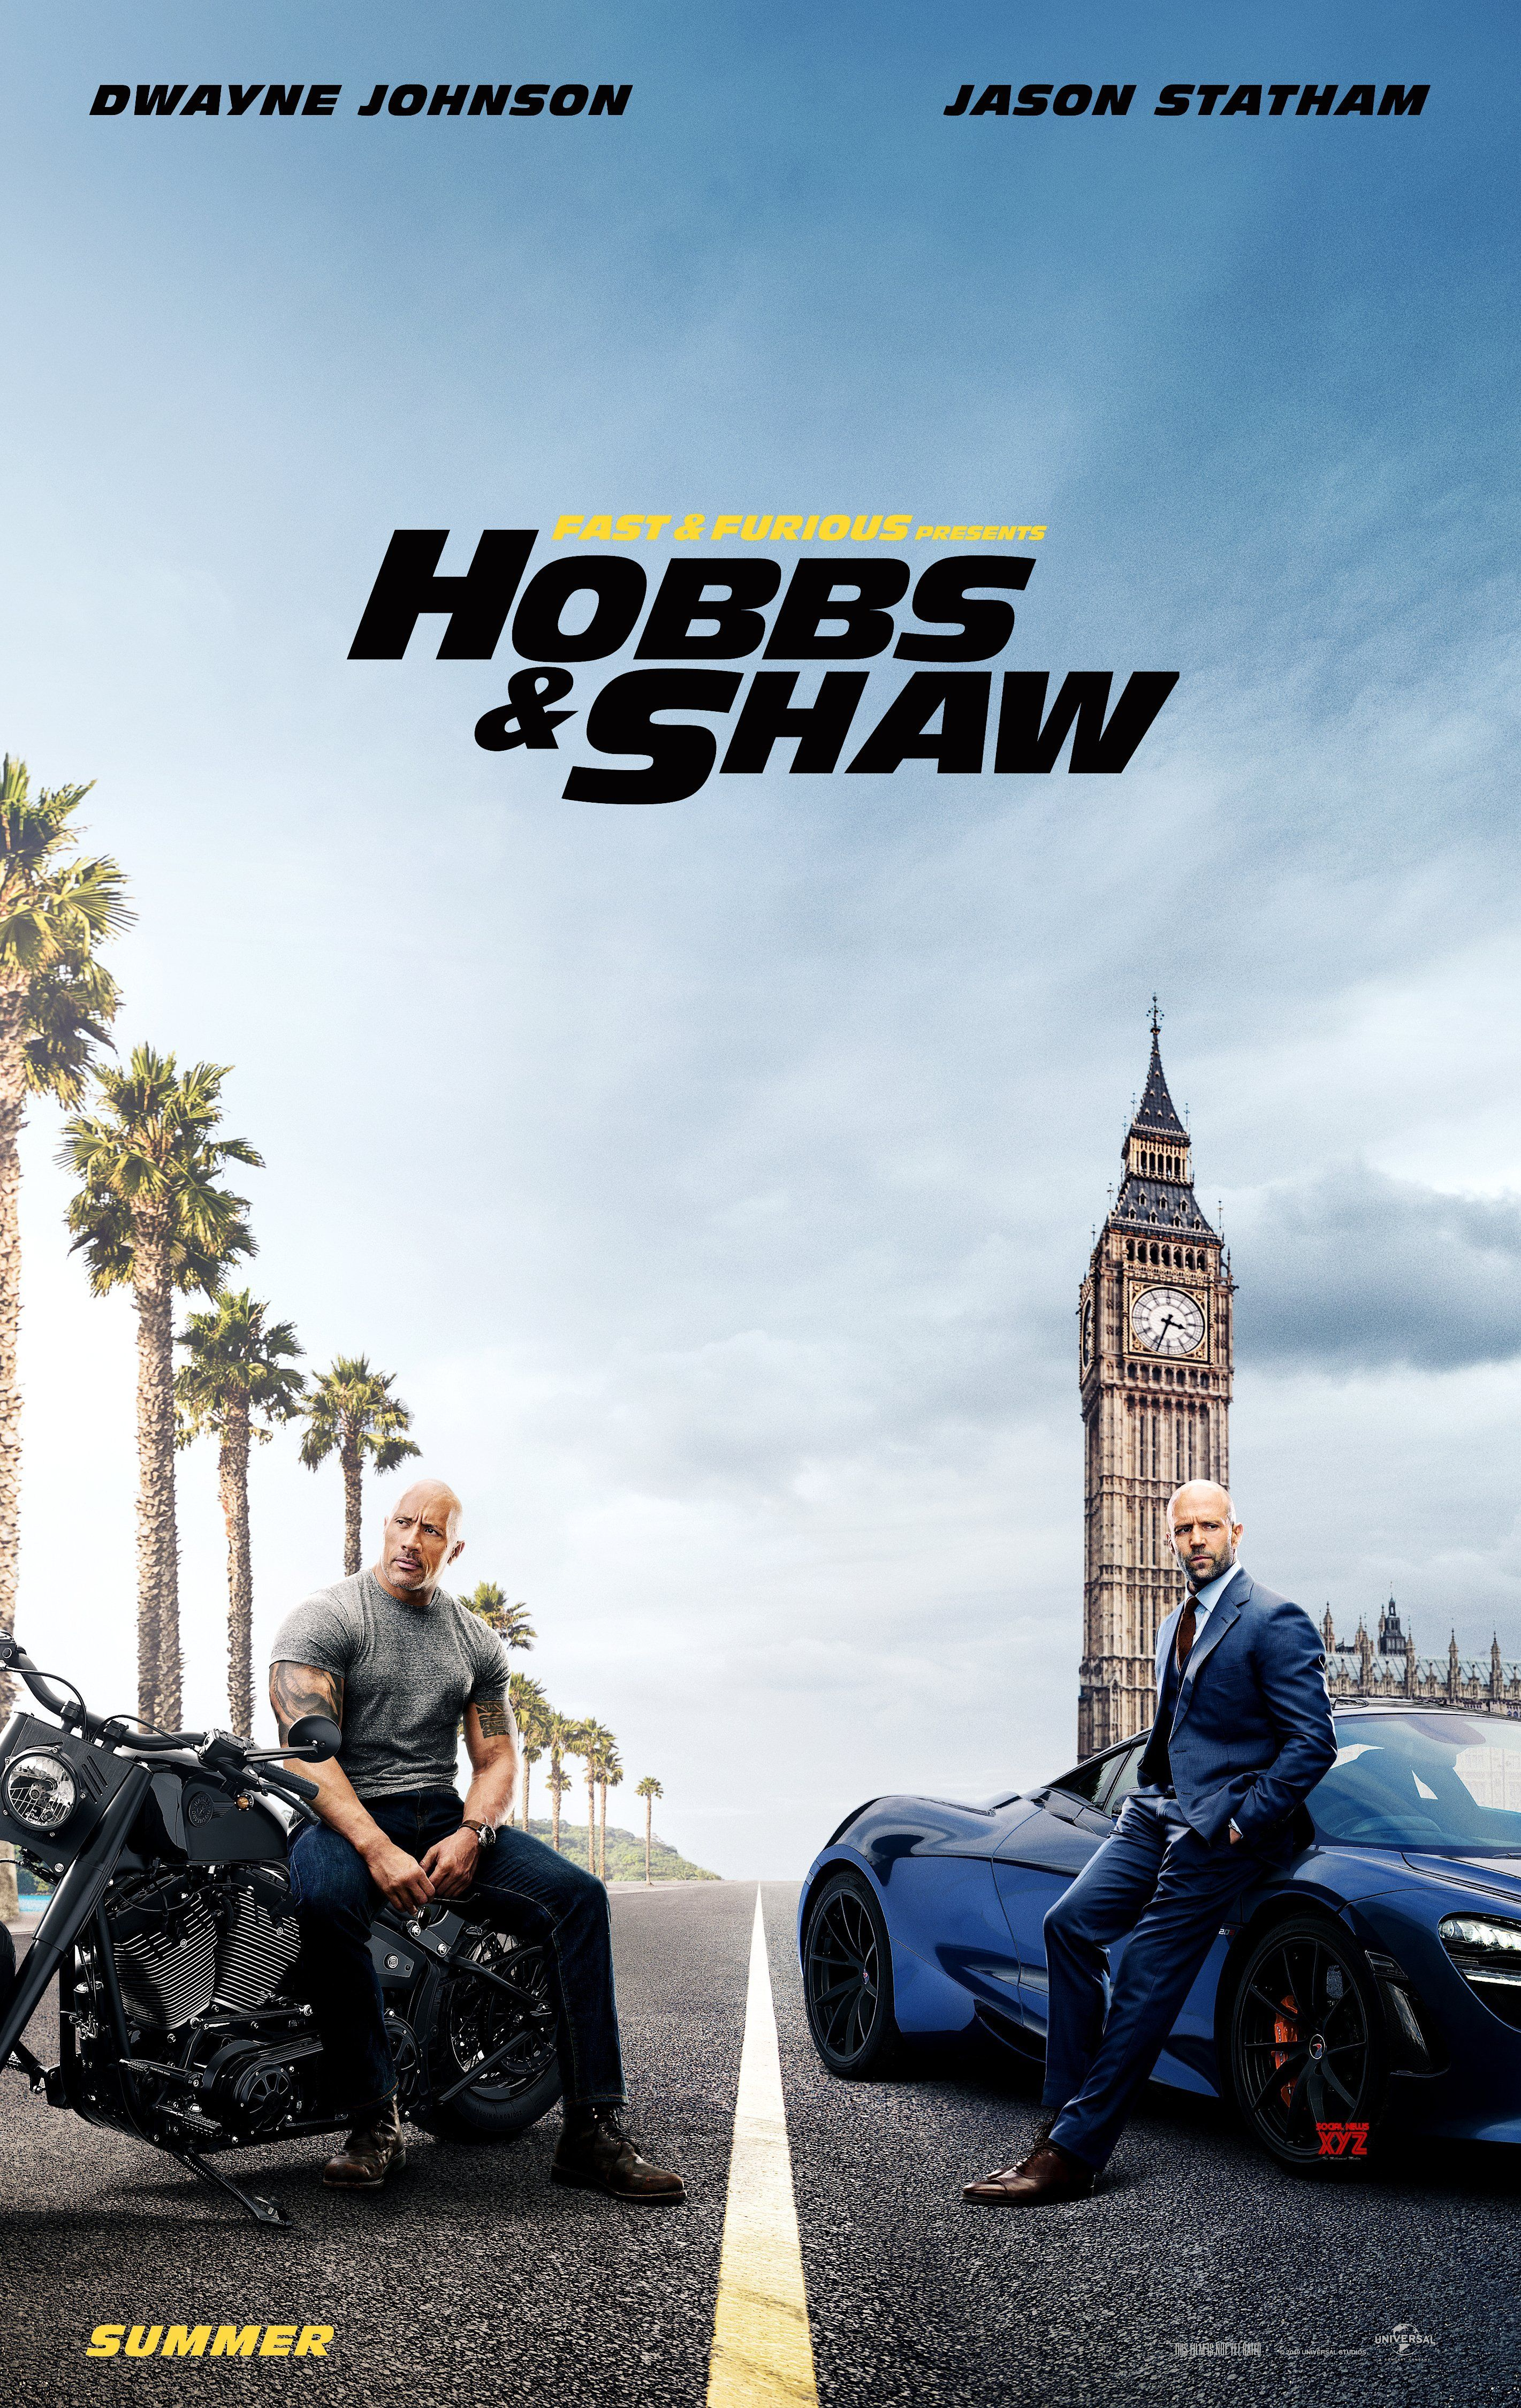 Hobbs And Shaw Movie Hd Posters Social News Xyz Fast And Furious Free Movies Online Full Movies